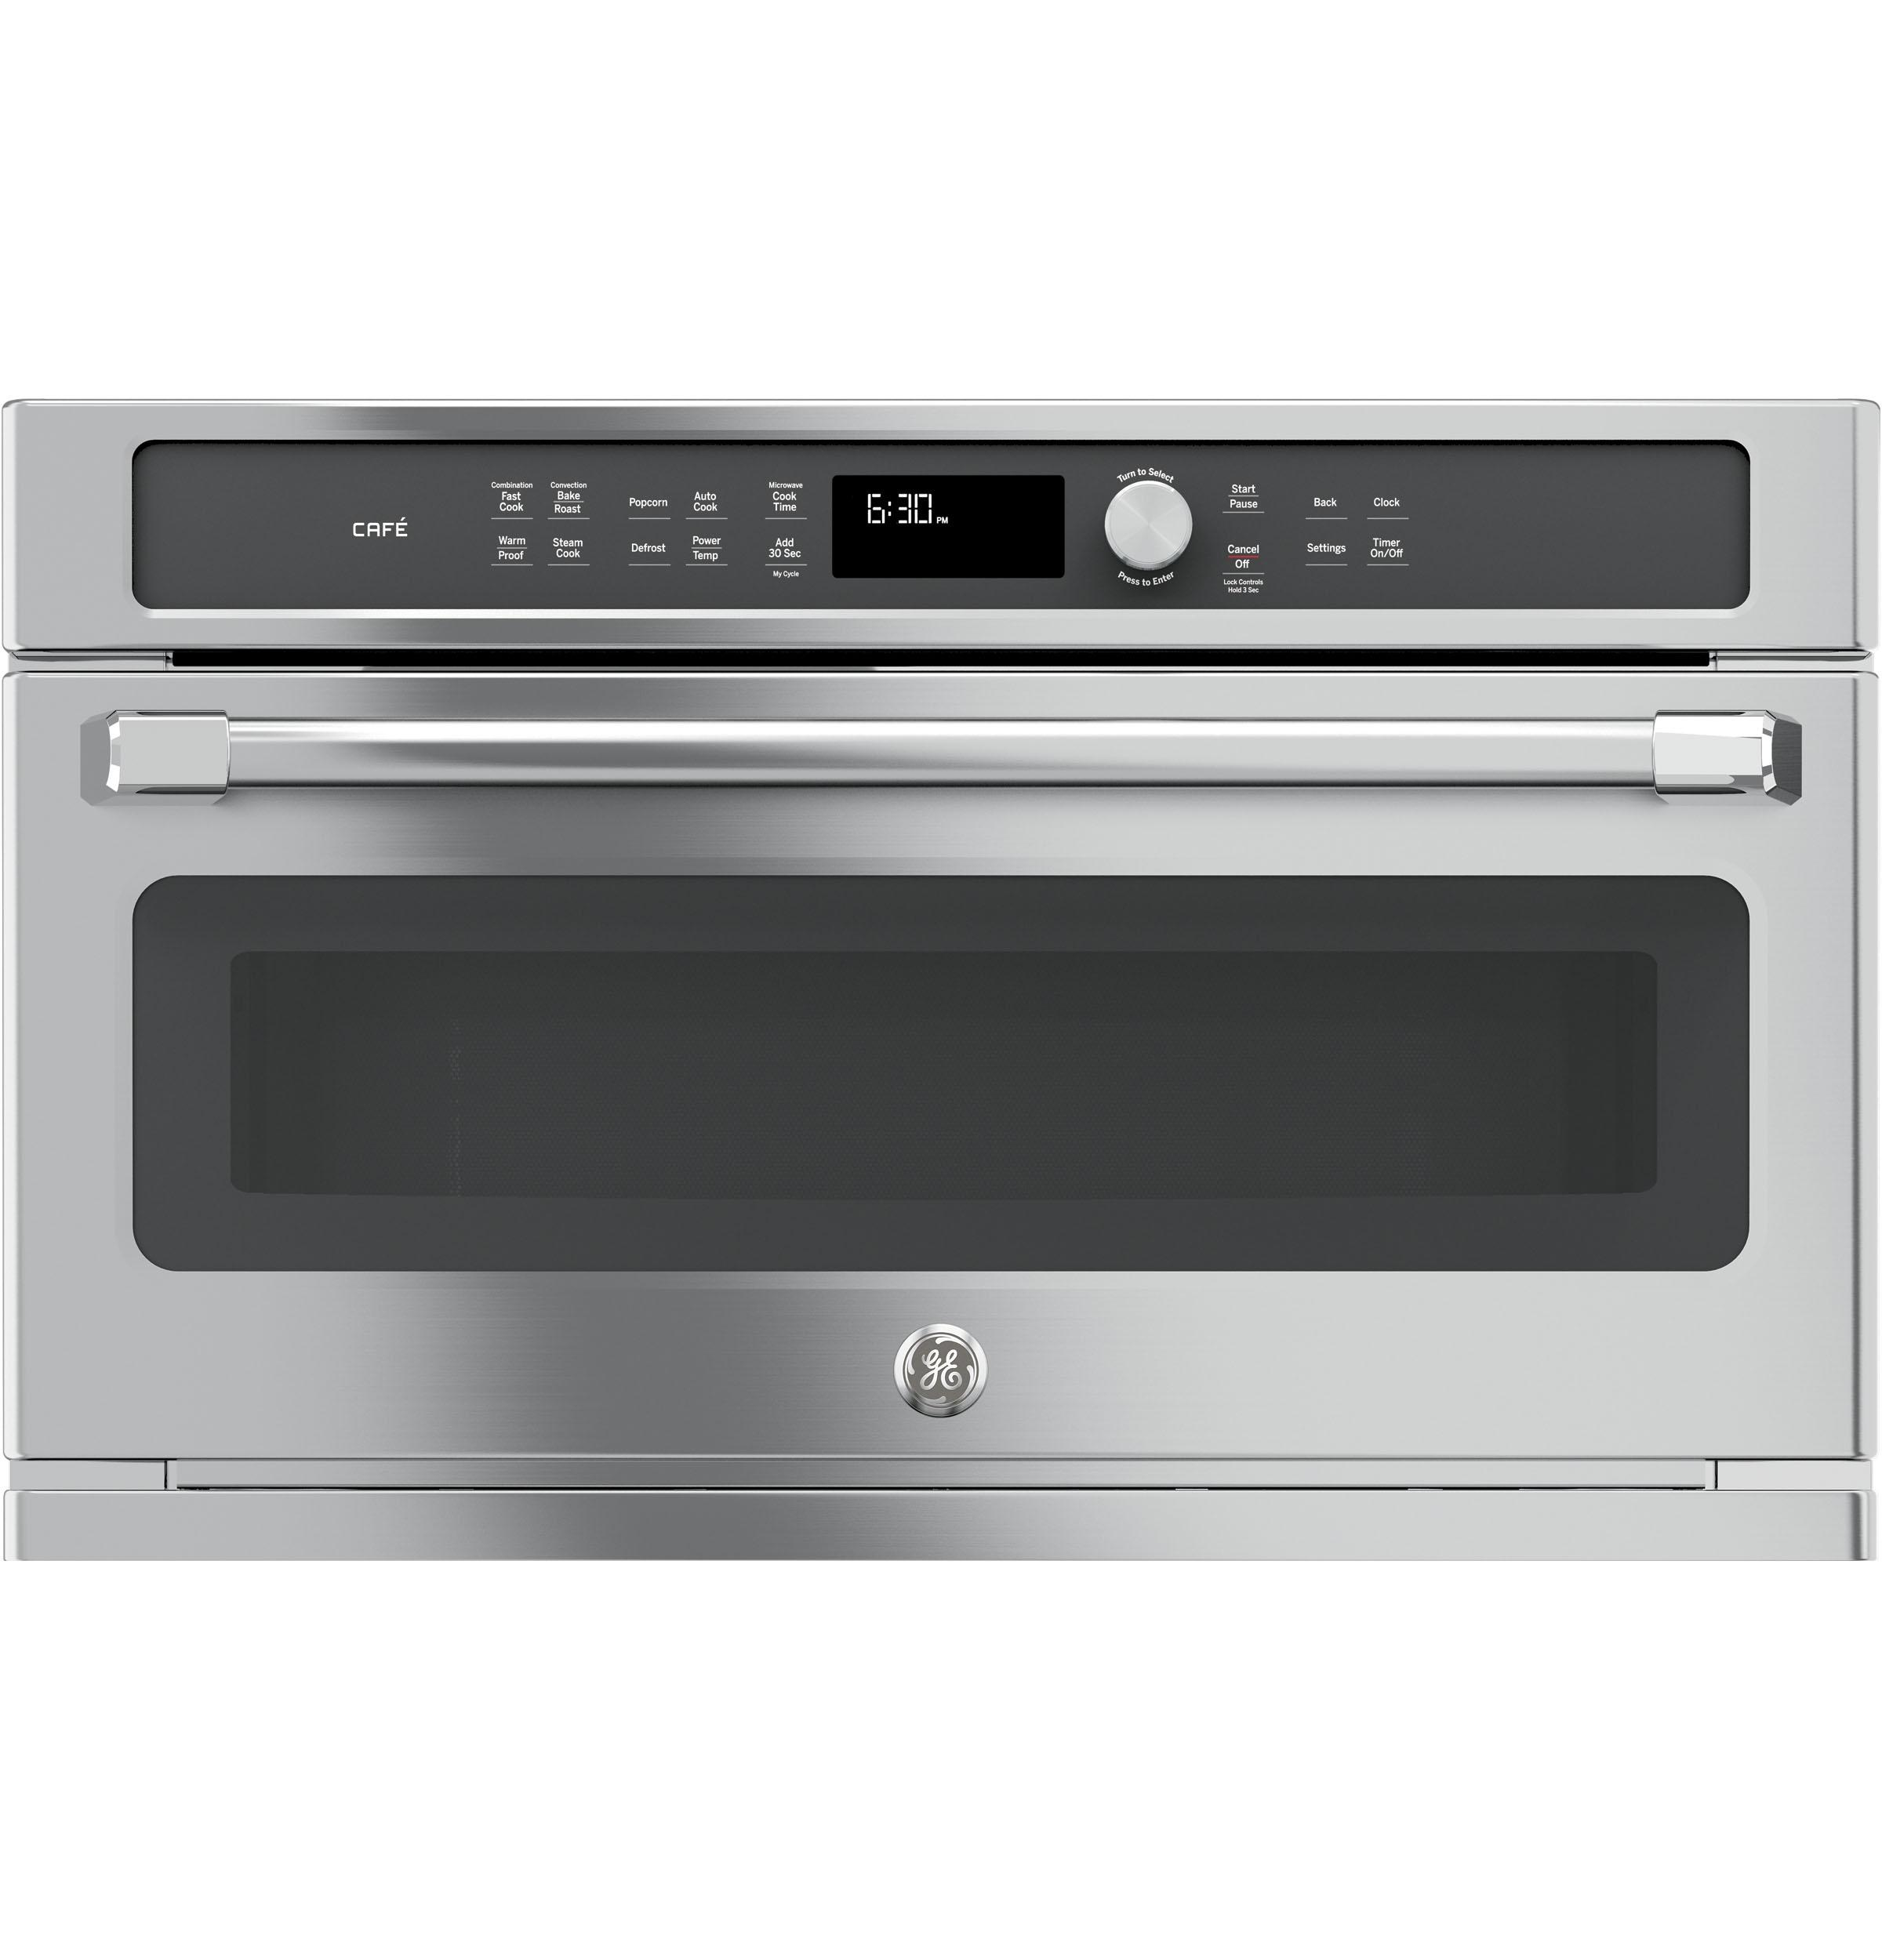 Ge Cafe Trade Series Built In Microwave Convection Oven